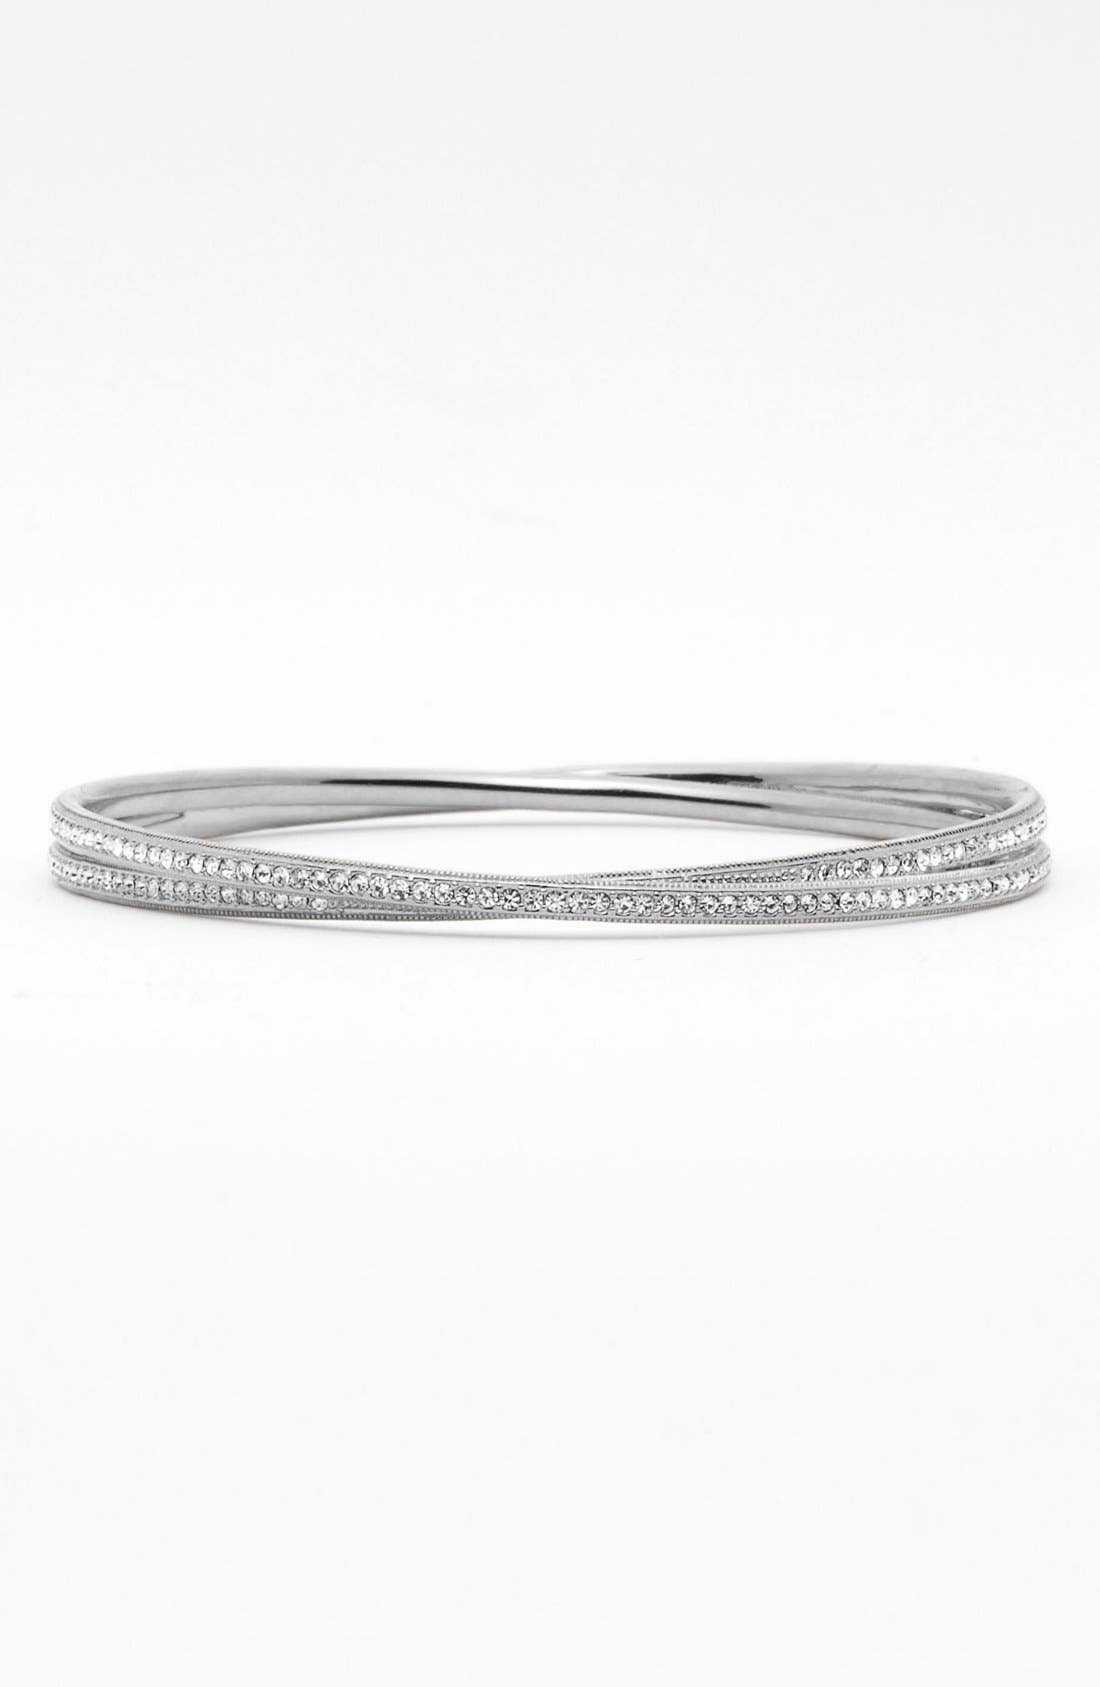 Alternate Image 1 Selected - Nadri Intertwined Crystal Bangle